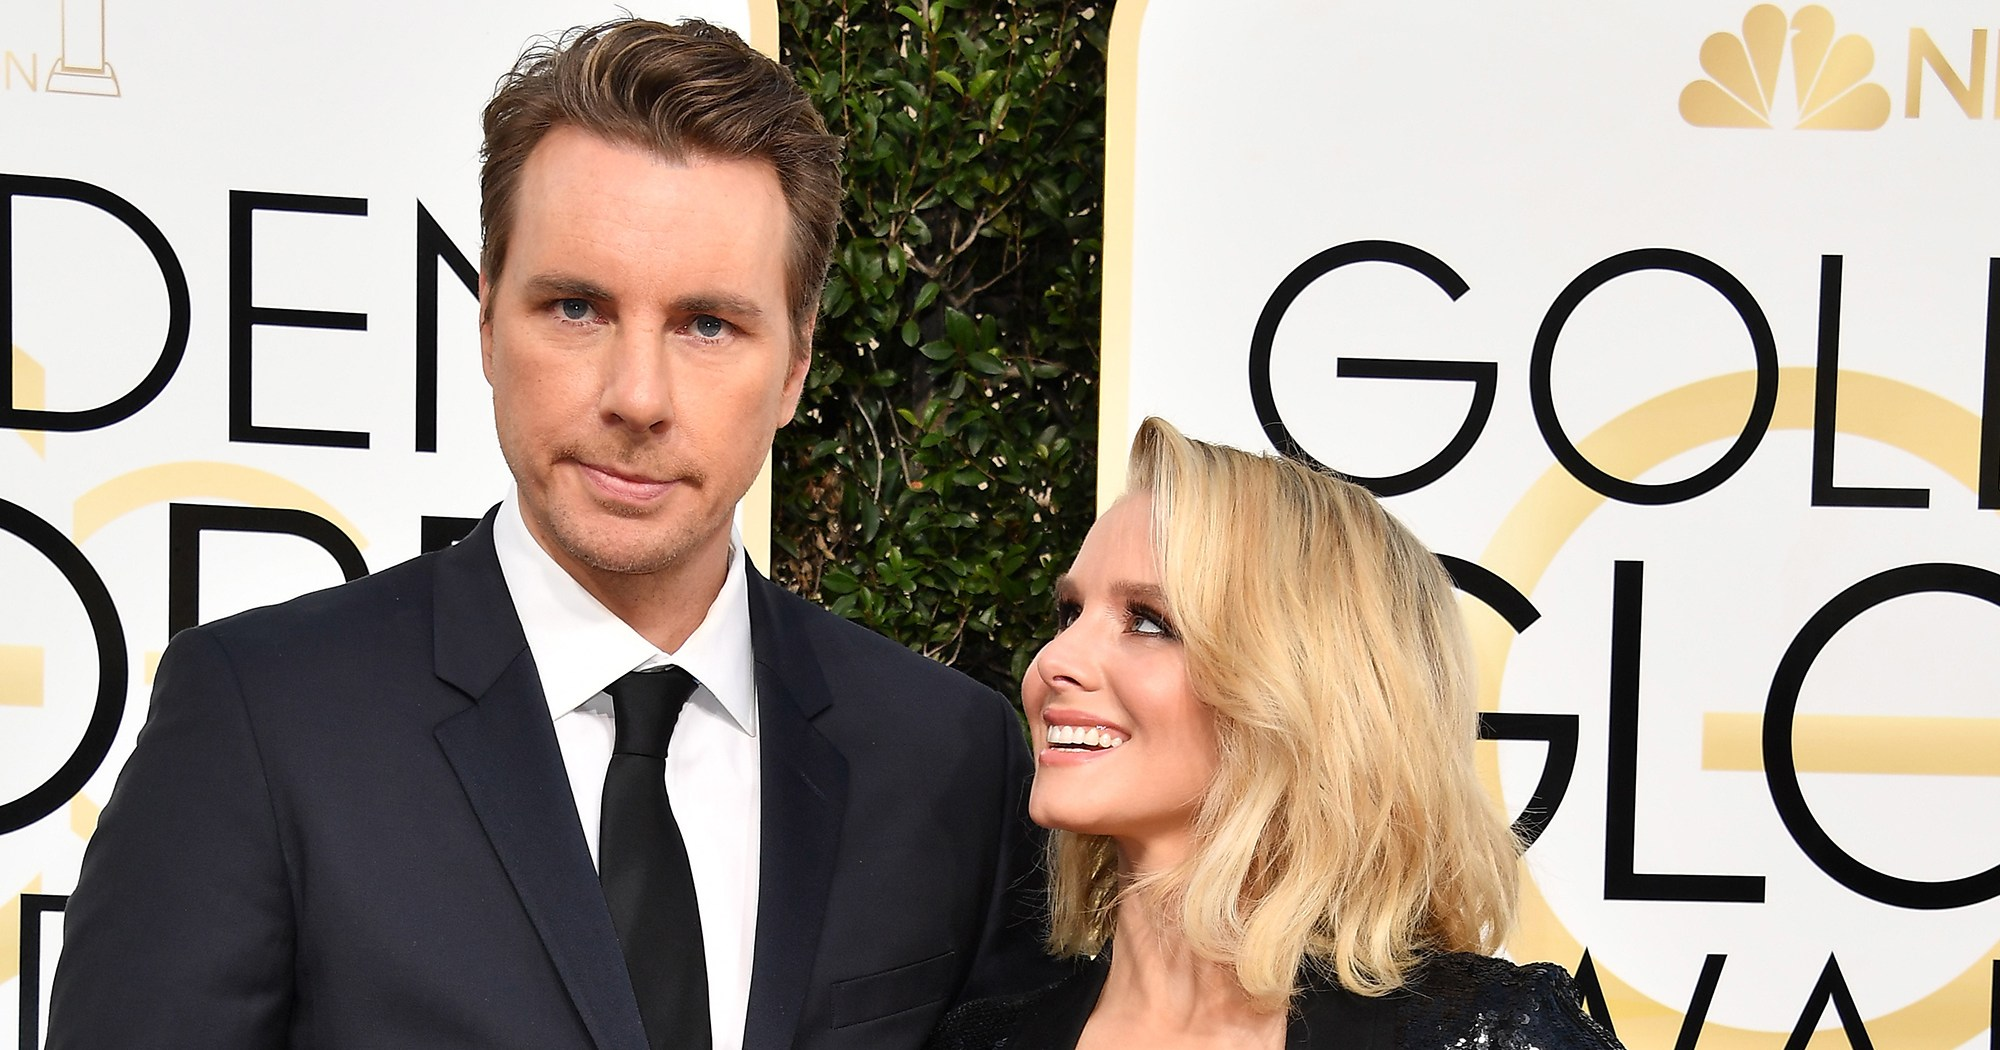 Every Time Dax Shepard and Kristen Bell Got Real About Parenting